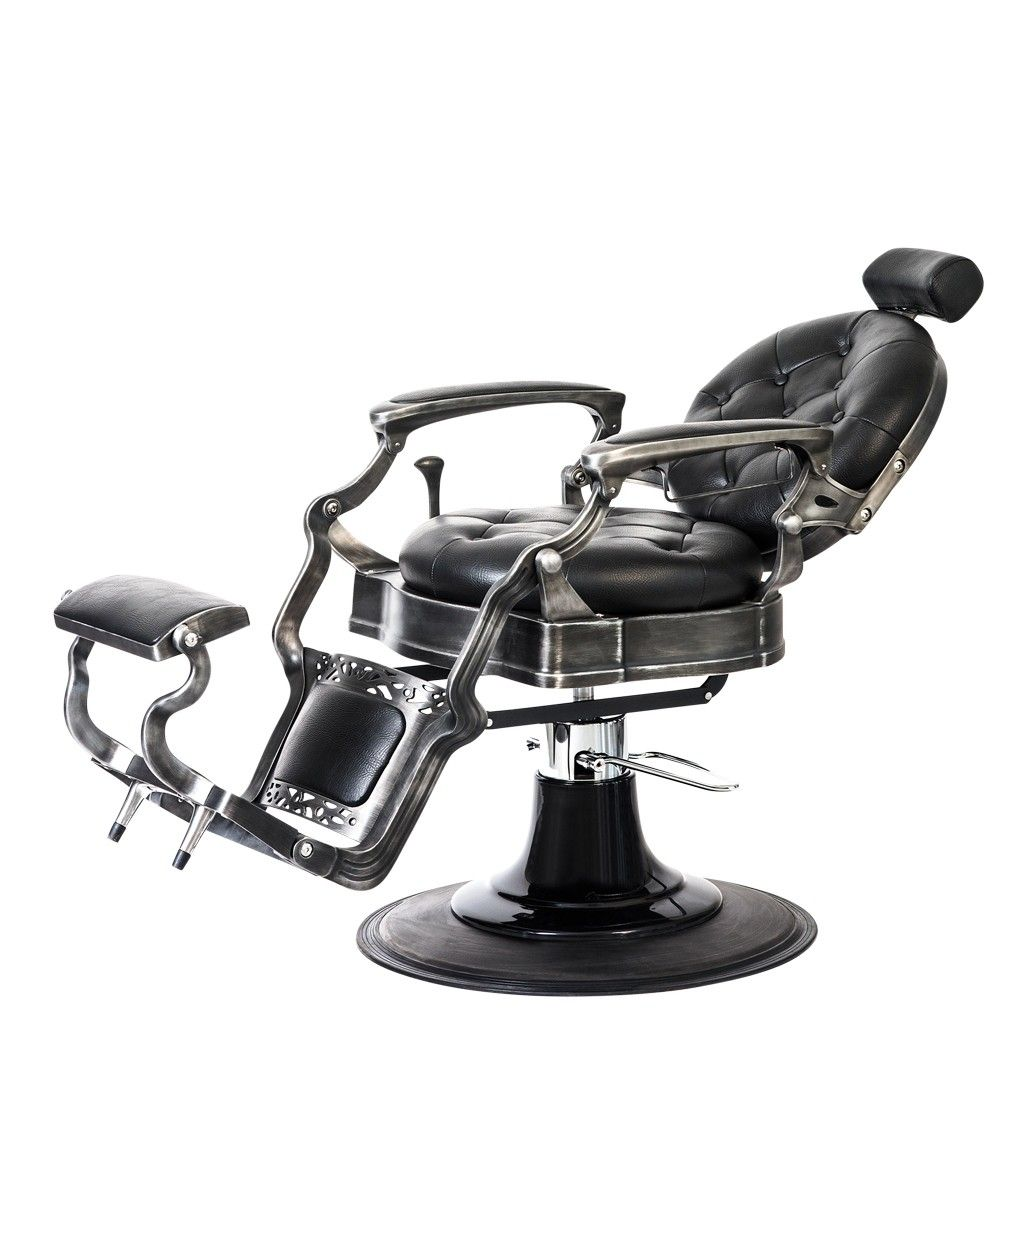 Alesso Professional Barber Chair is part of Barber chair - Take yourself on a trip down memory lane with the vintage inspired Alesso Professional Barber Chair  It's 50'sstyle design is sure to give a cozy vintage feel to any barber shop or salon, and this chair is built with topoftheline qualit